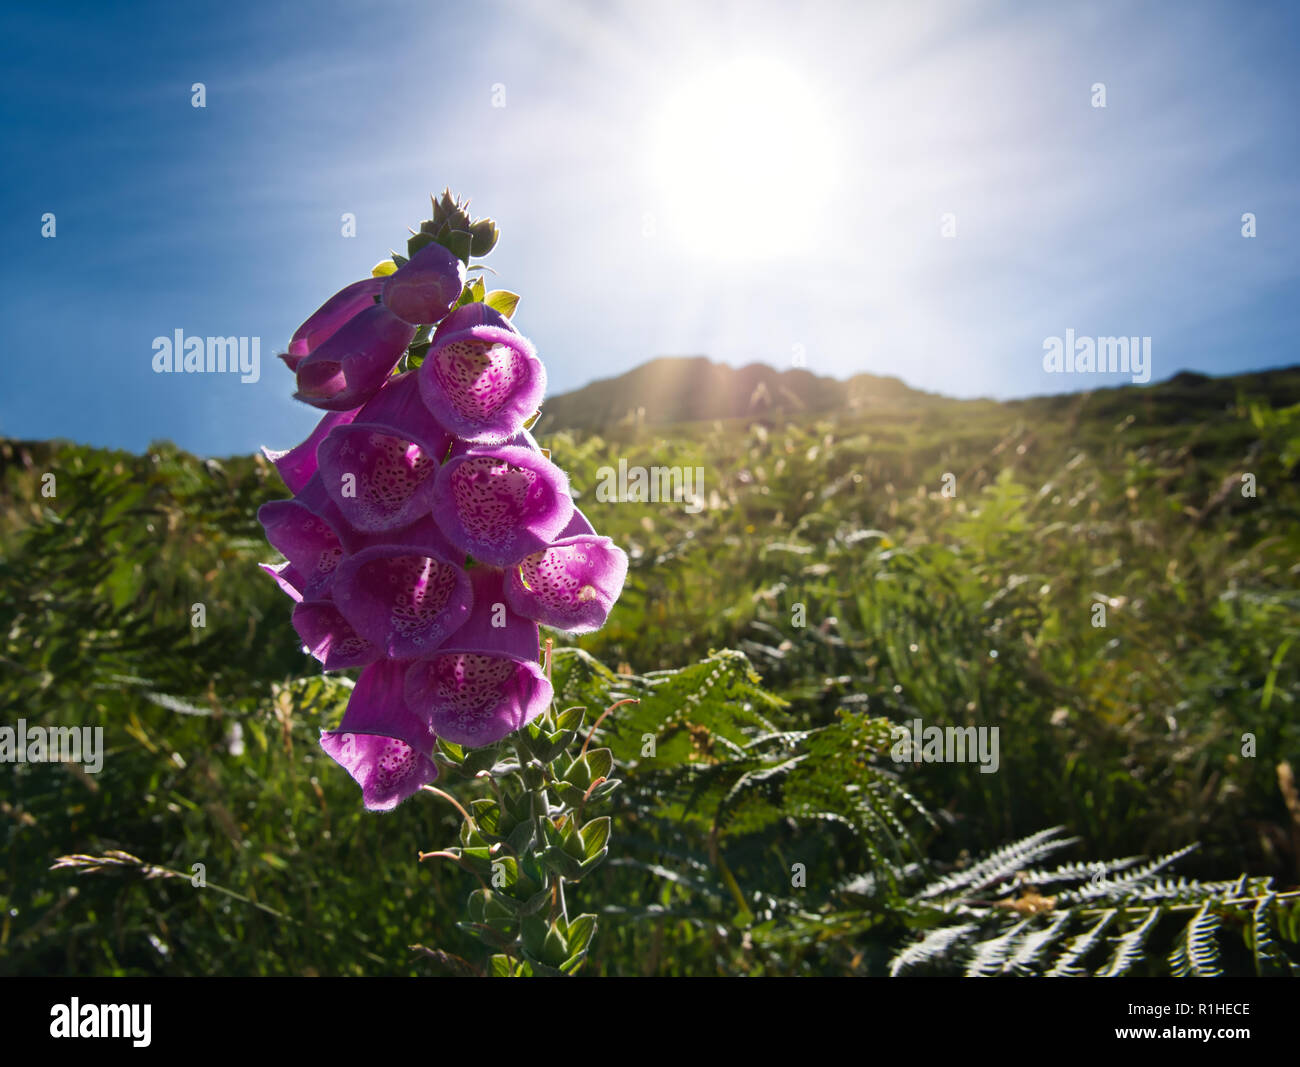 The rays of the sun shine through a purple flower in the middle of the green grass. - Stock Image